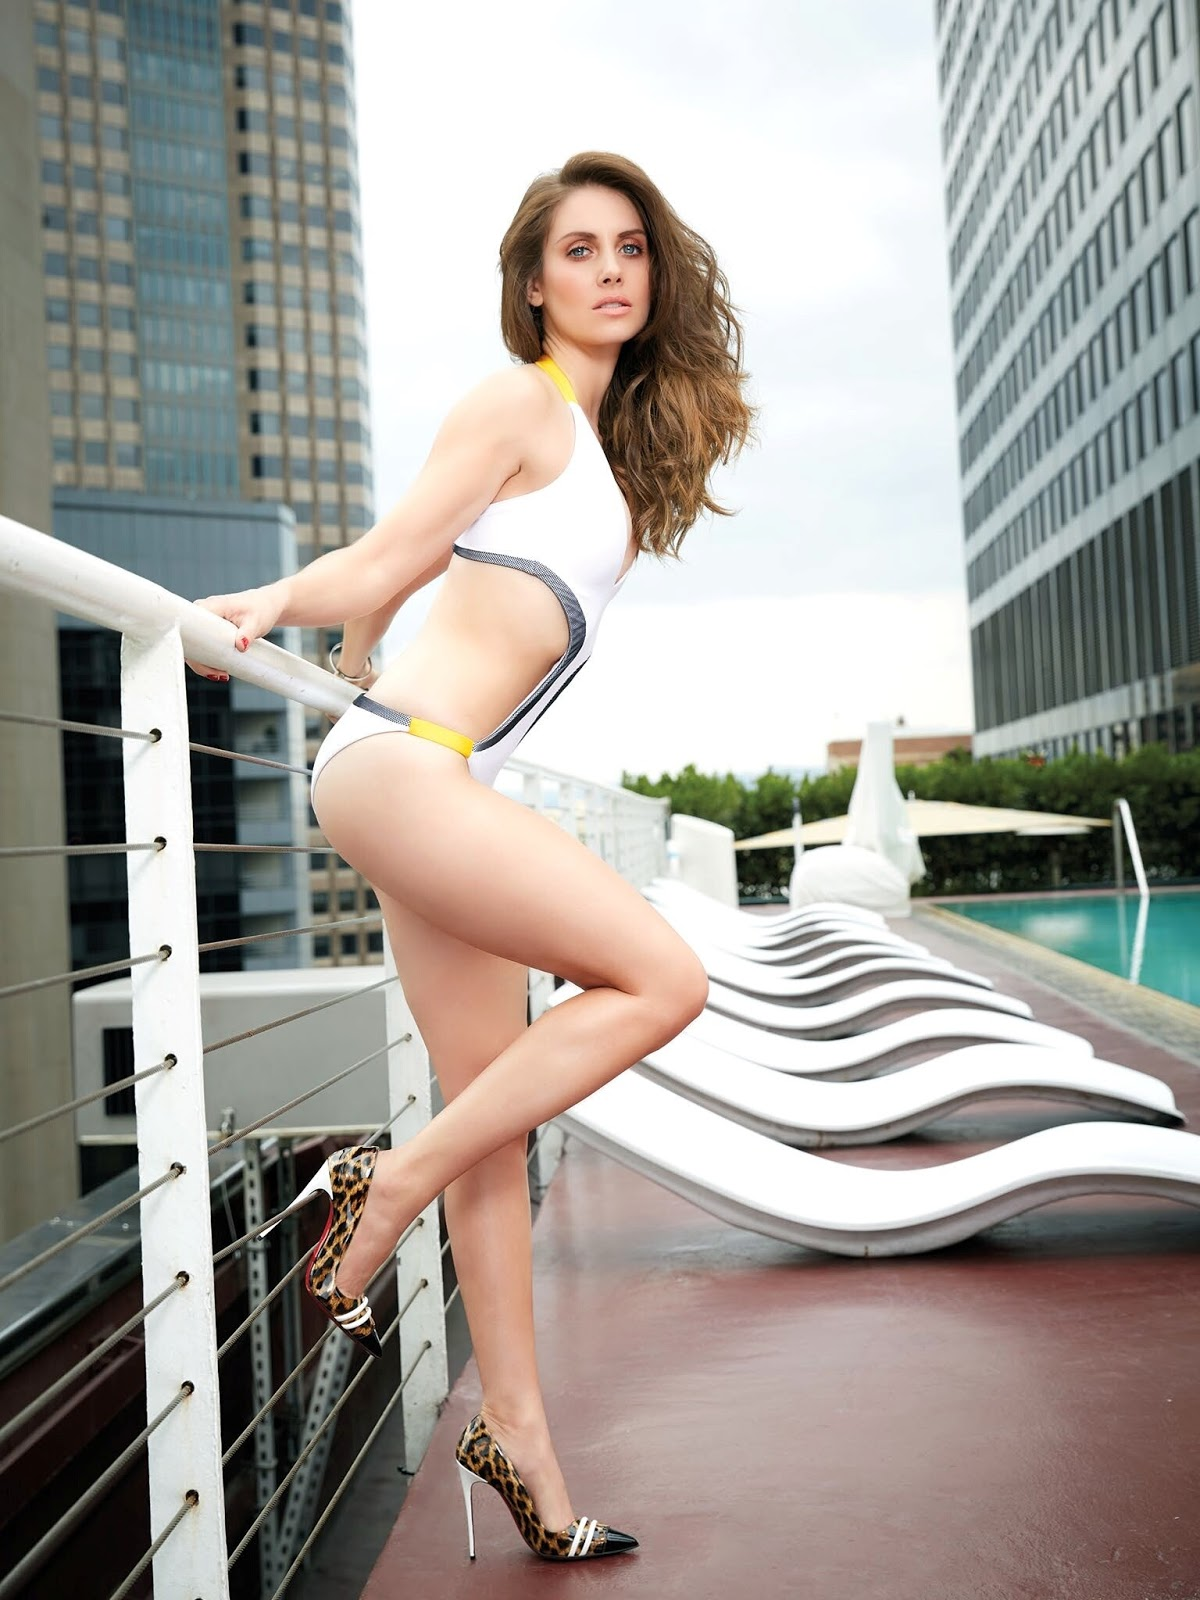 Alison brie gillian jacobs pinup special Part 3 6